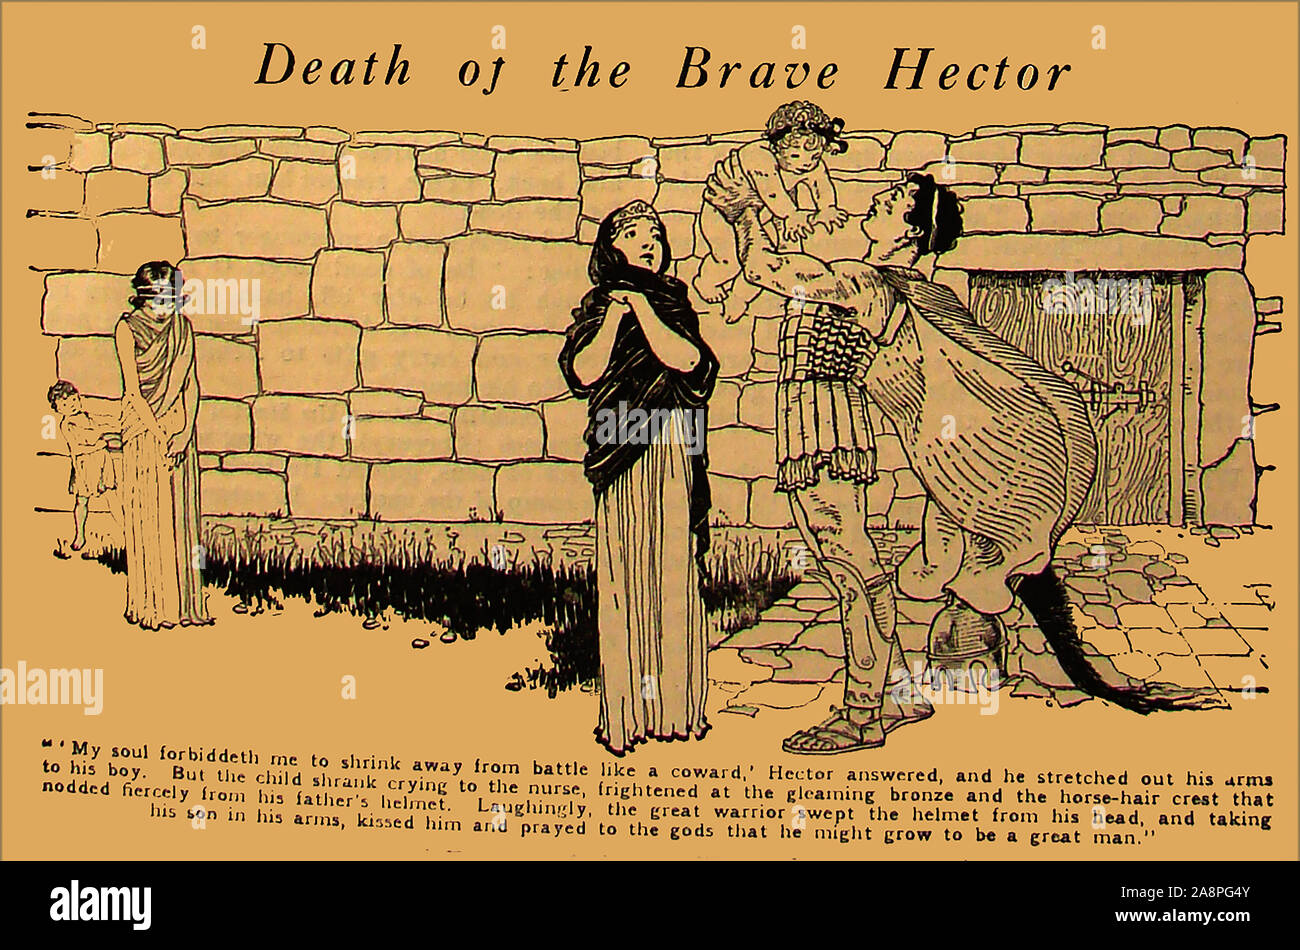 A vintage cartoon style illustration showing Hector the Greek and Roman mythological hero just before he died in battle. He was a Trojan prince and hero in the Trojan Wars. Traditionally he was   the first-born son of King Priam and Queen Hecuba,  a descendant of Dardanus and Tros, the founder of Troy and was married to Andromache, with whom he had an infant son, Scamandrius (whom the people of Troy called Astyanax) (shown in the illustration). Stock Photo